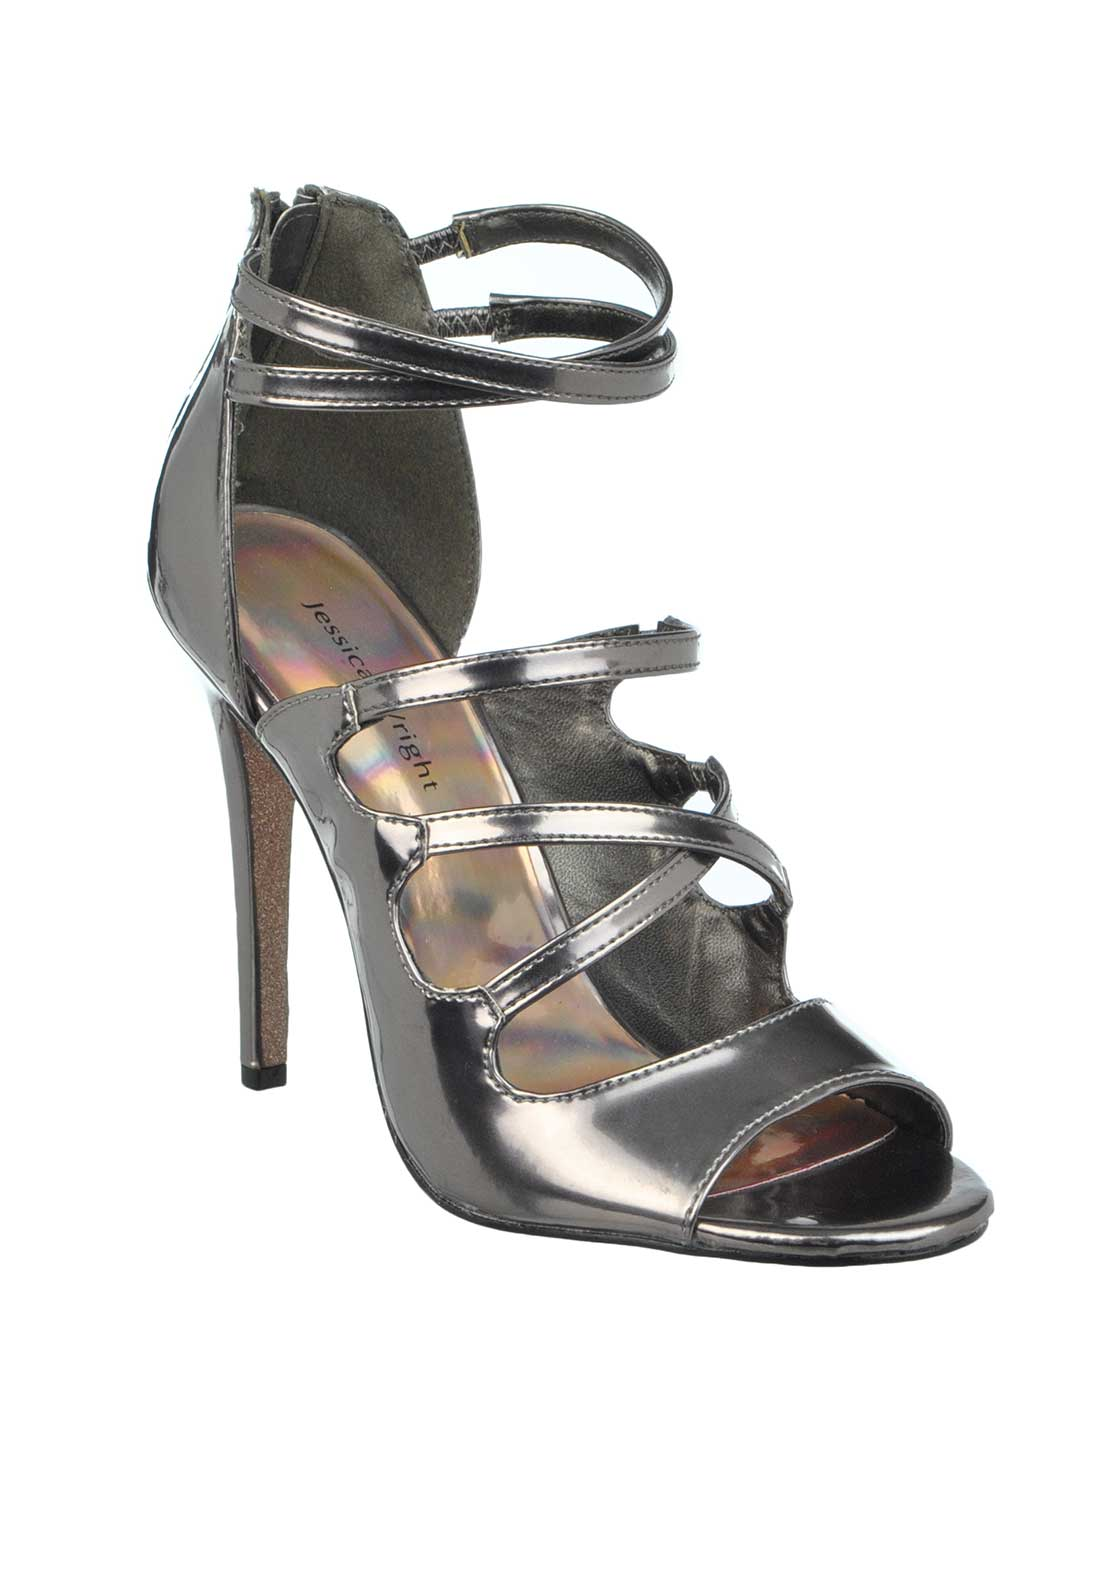 Jessica Wright Angelina Metallic Strappy Open Toe Heeled Sandals, Pewter